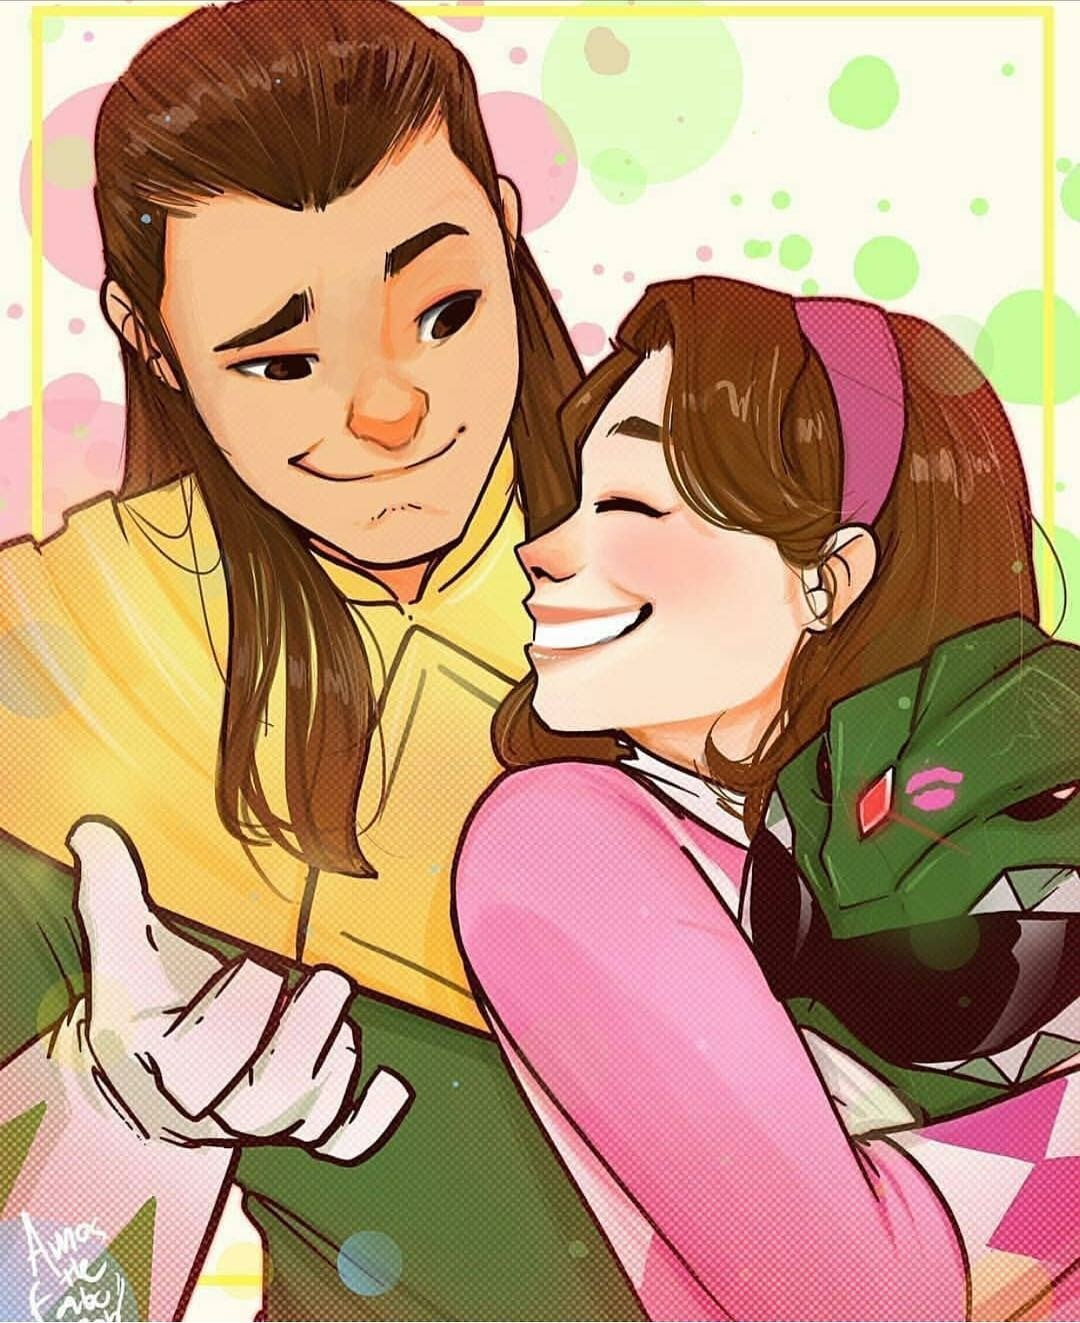 Fan art of Kimberly Hart/Tommy Oliver